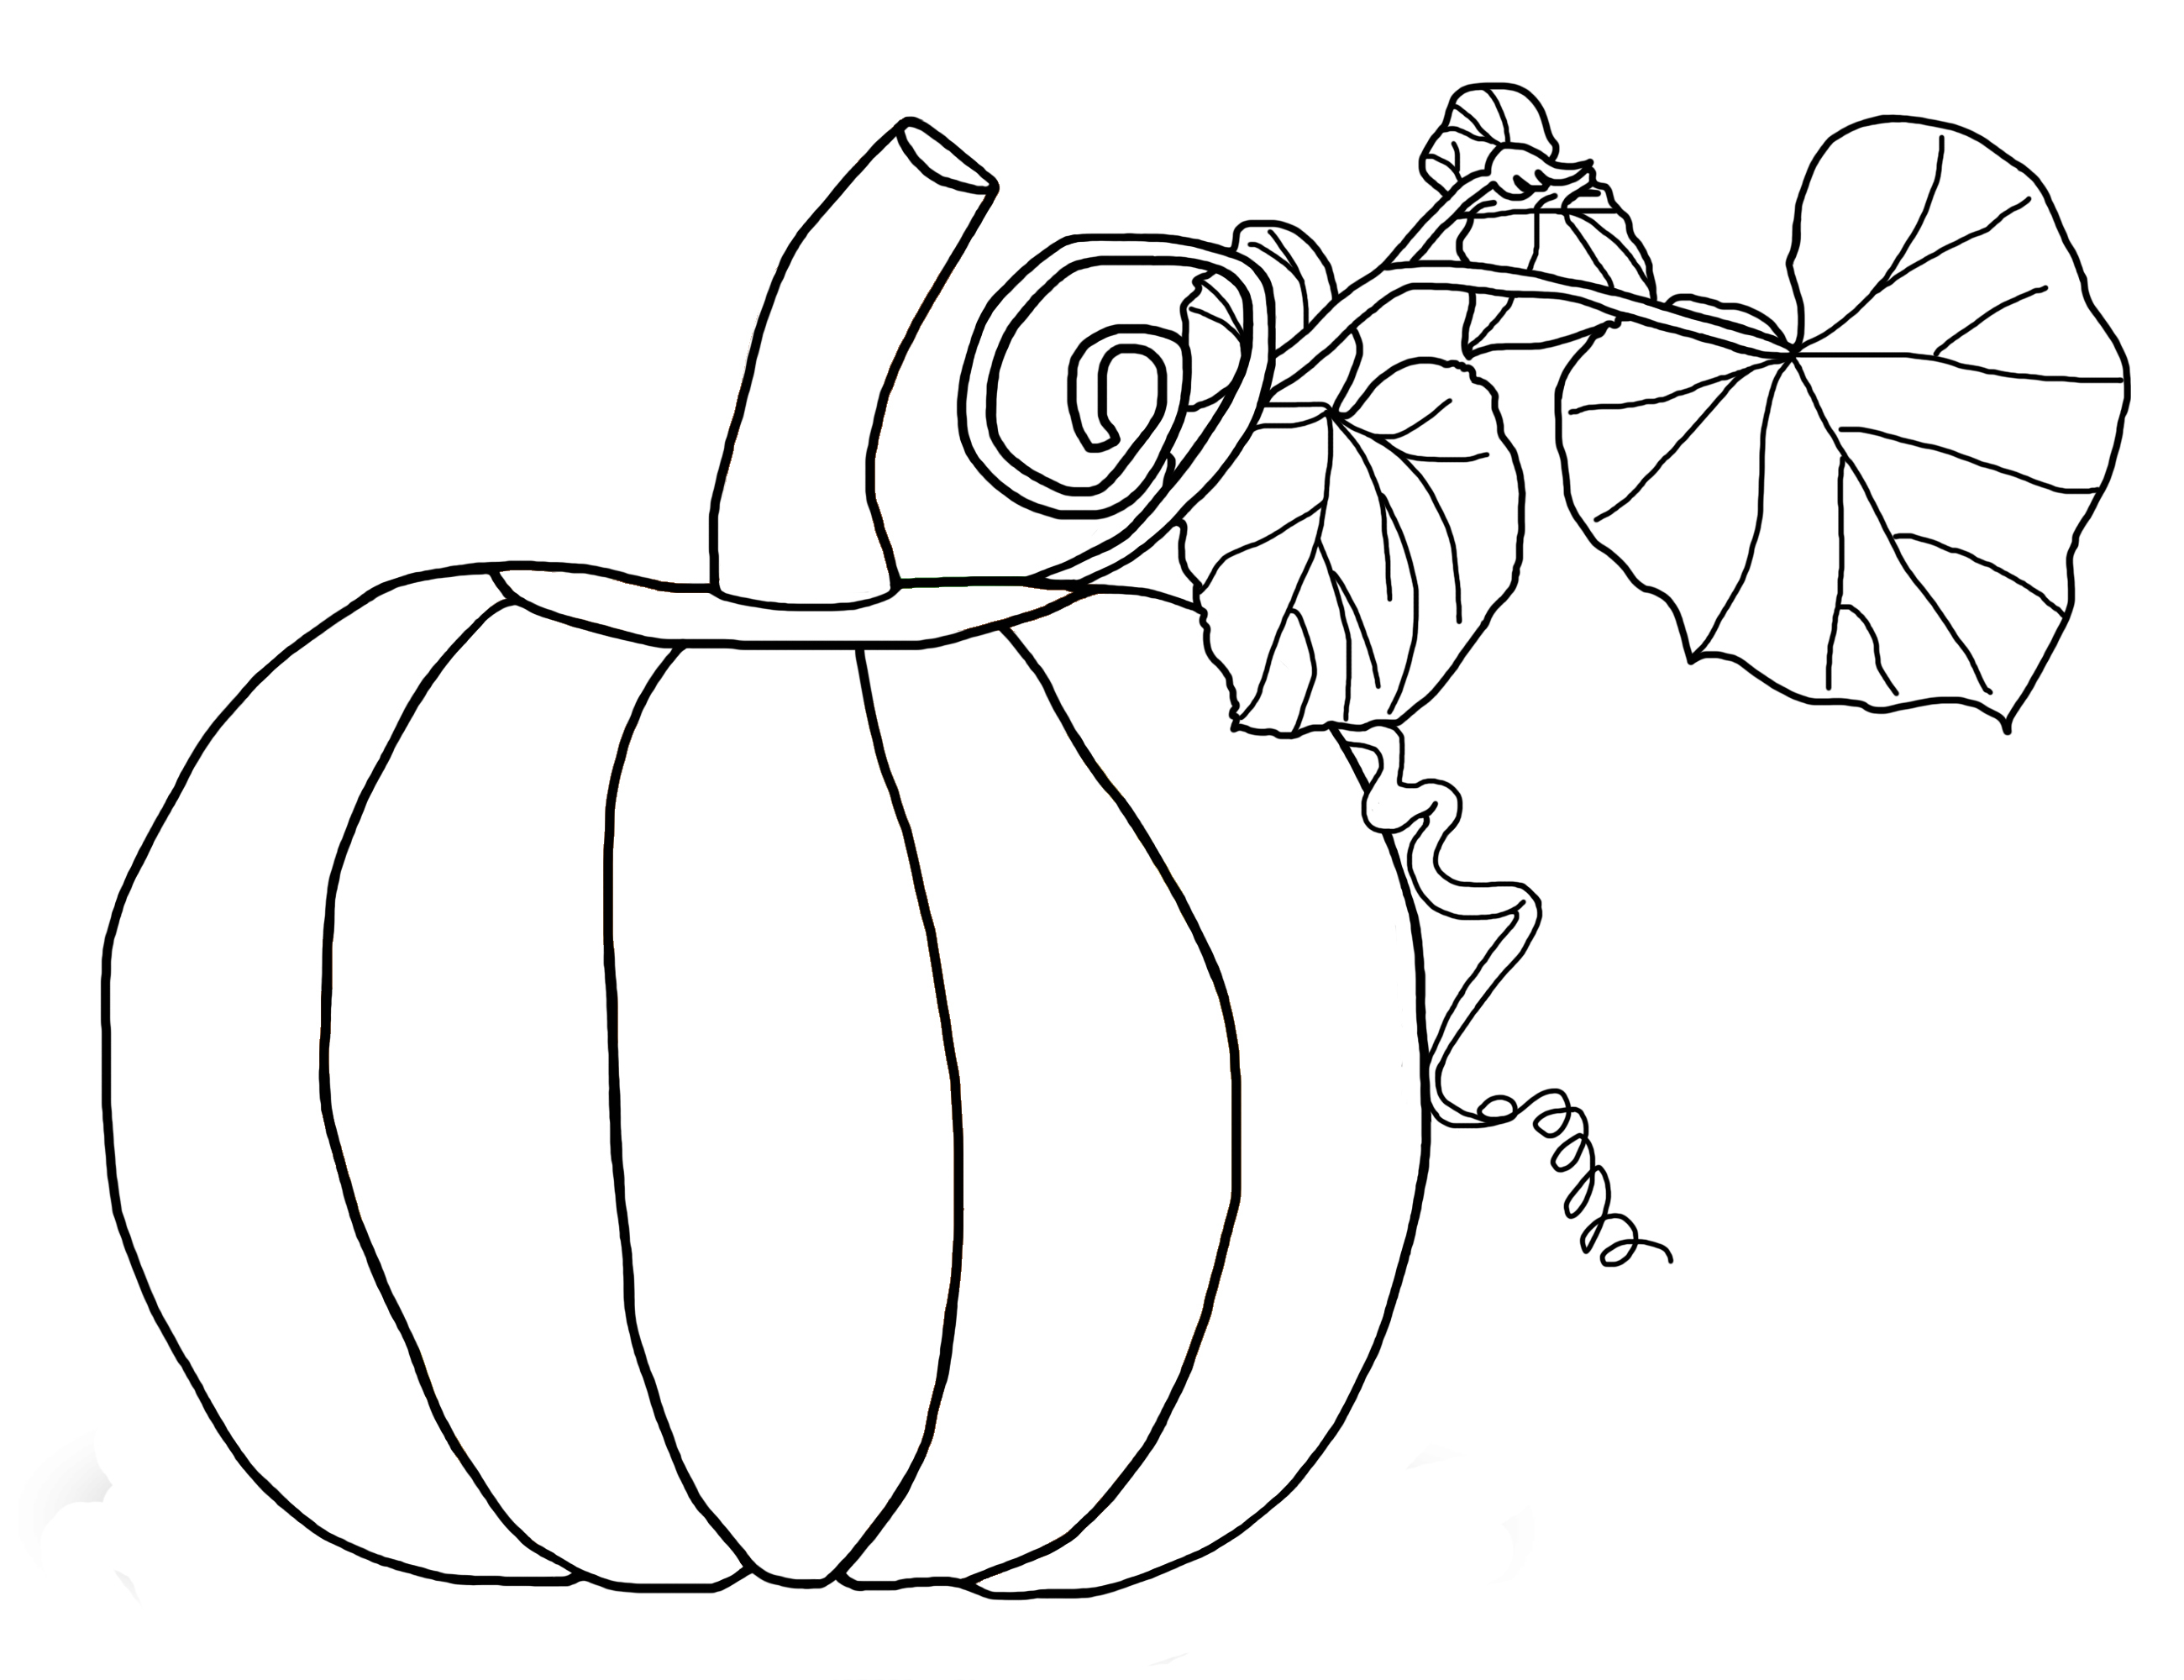 pictures of pumpkins search results pumpkin printable templates pumpkin of pumpkins pictures